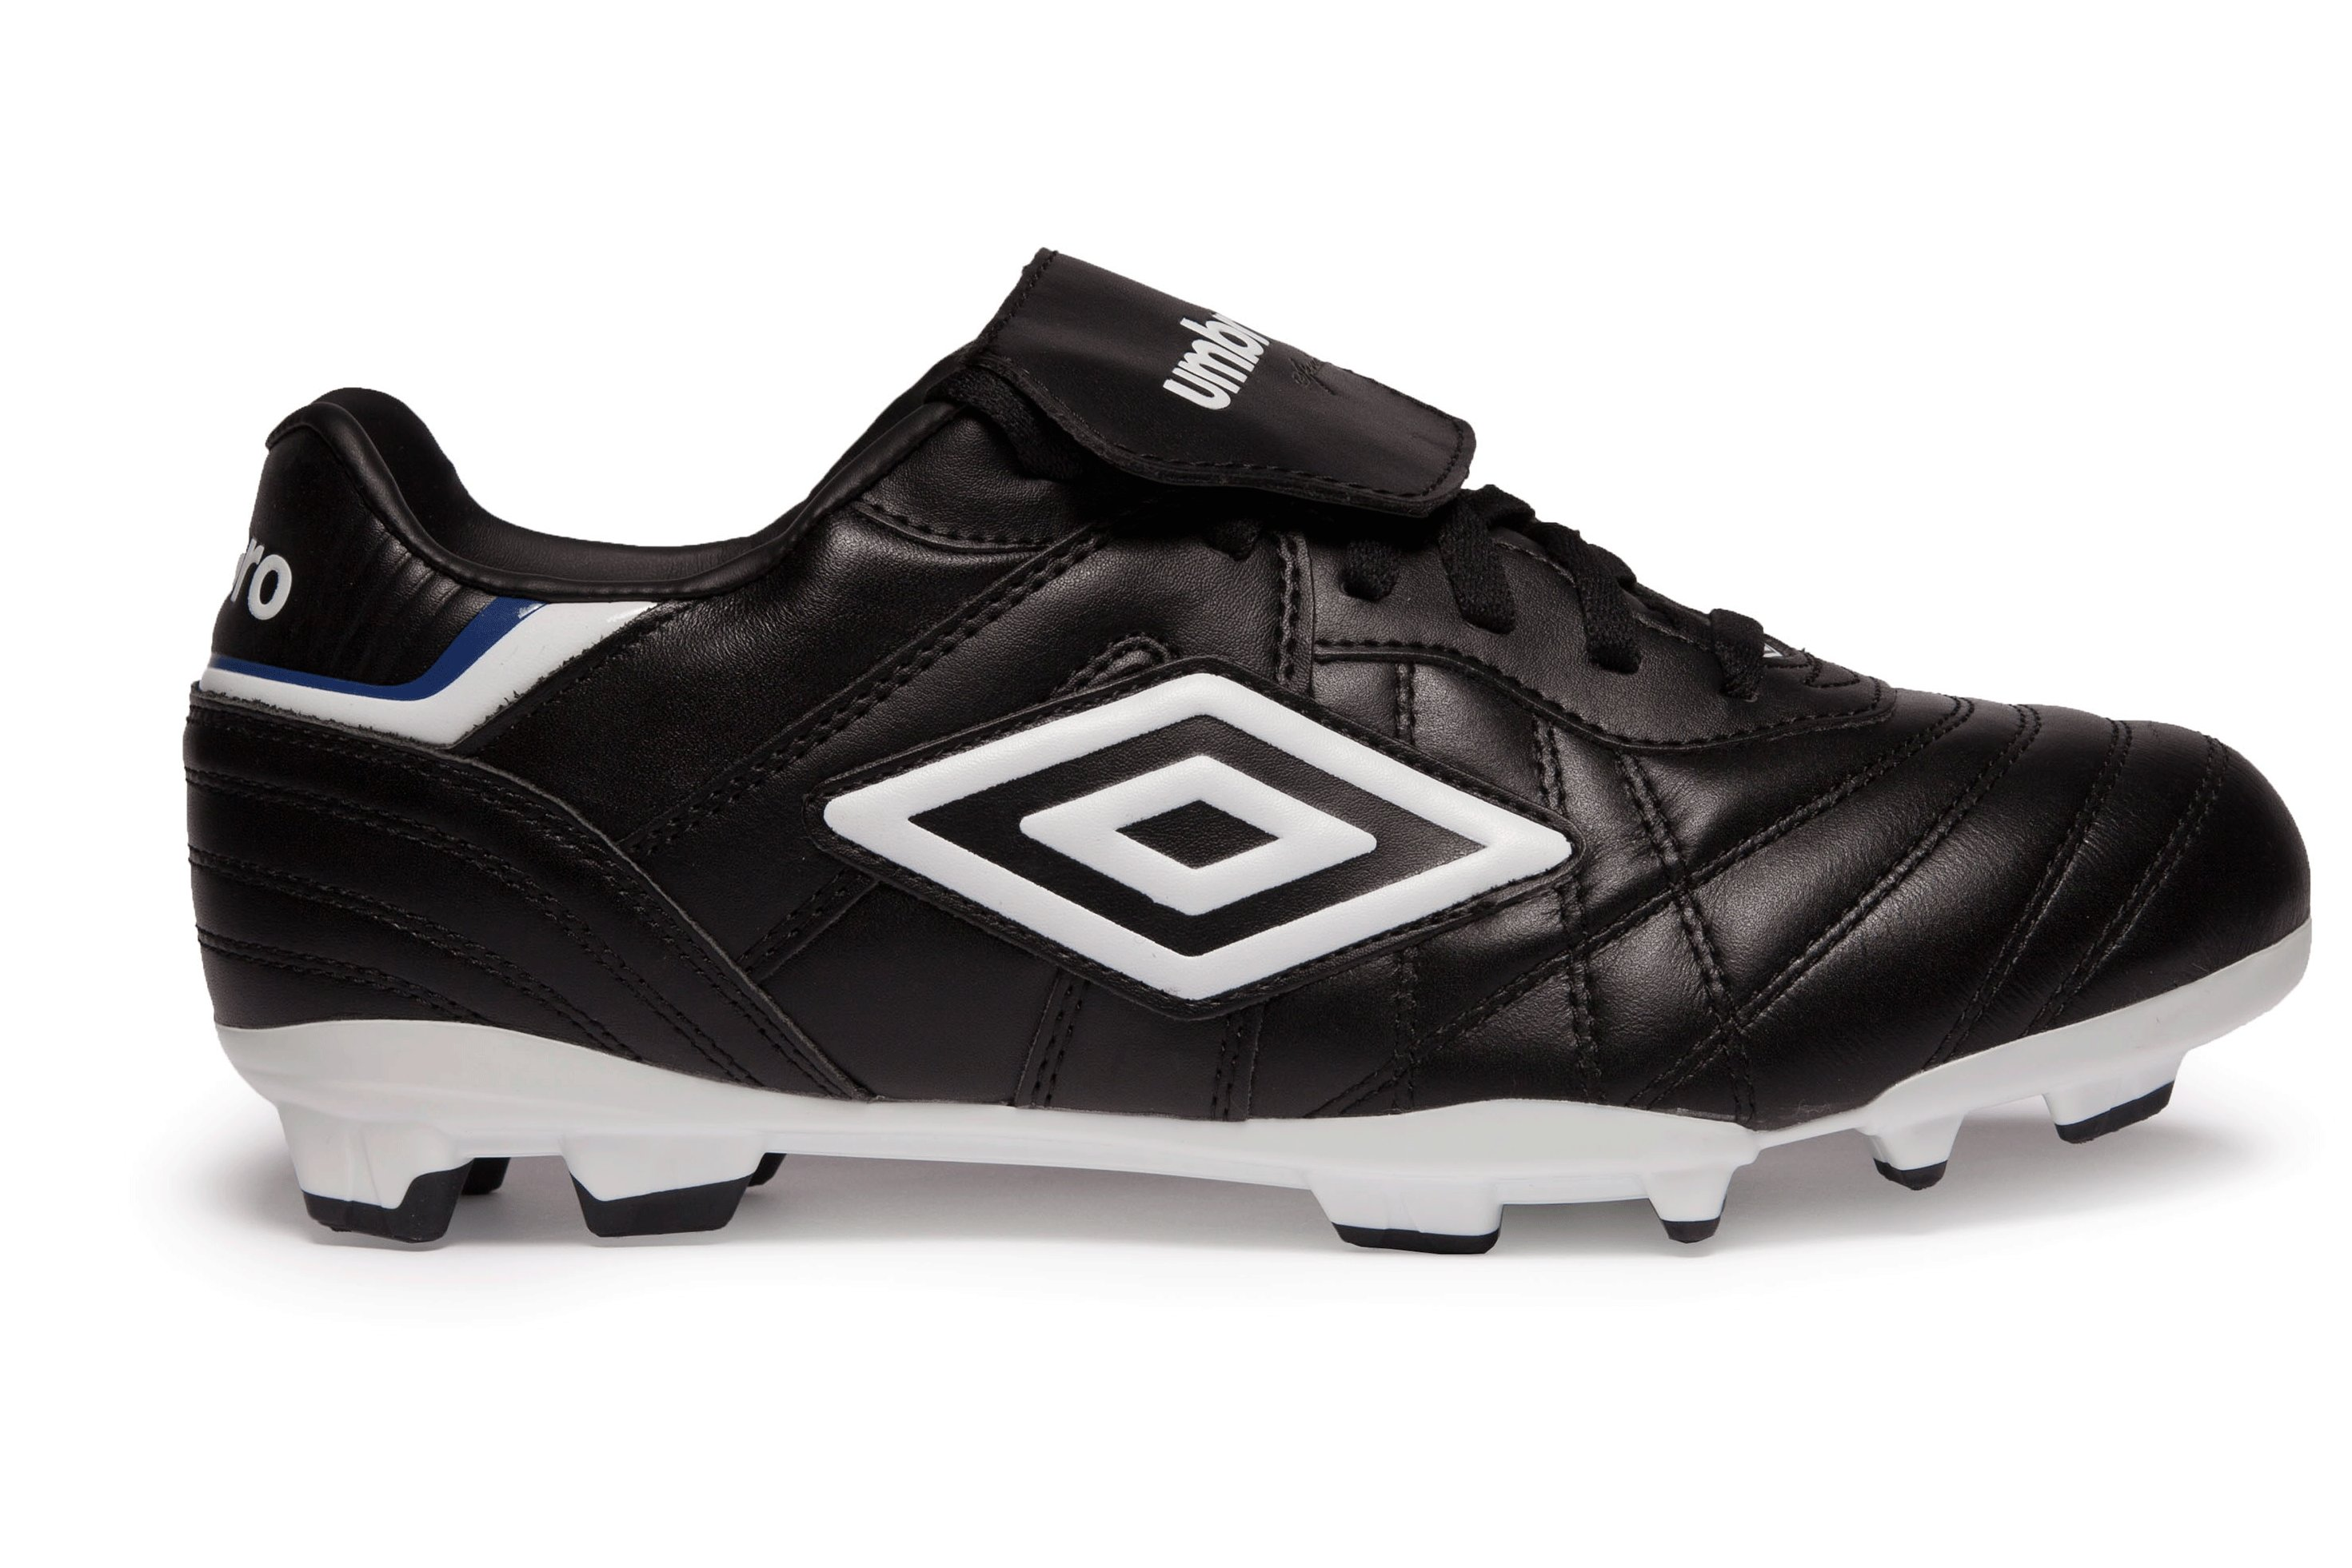 UMBRO SPECIALI ETERNAL PREM FG